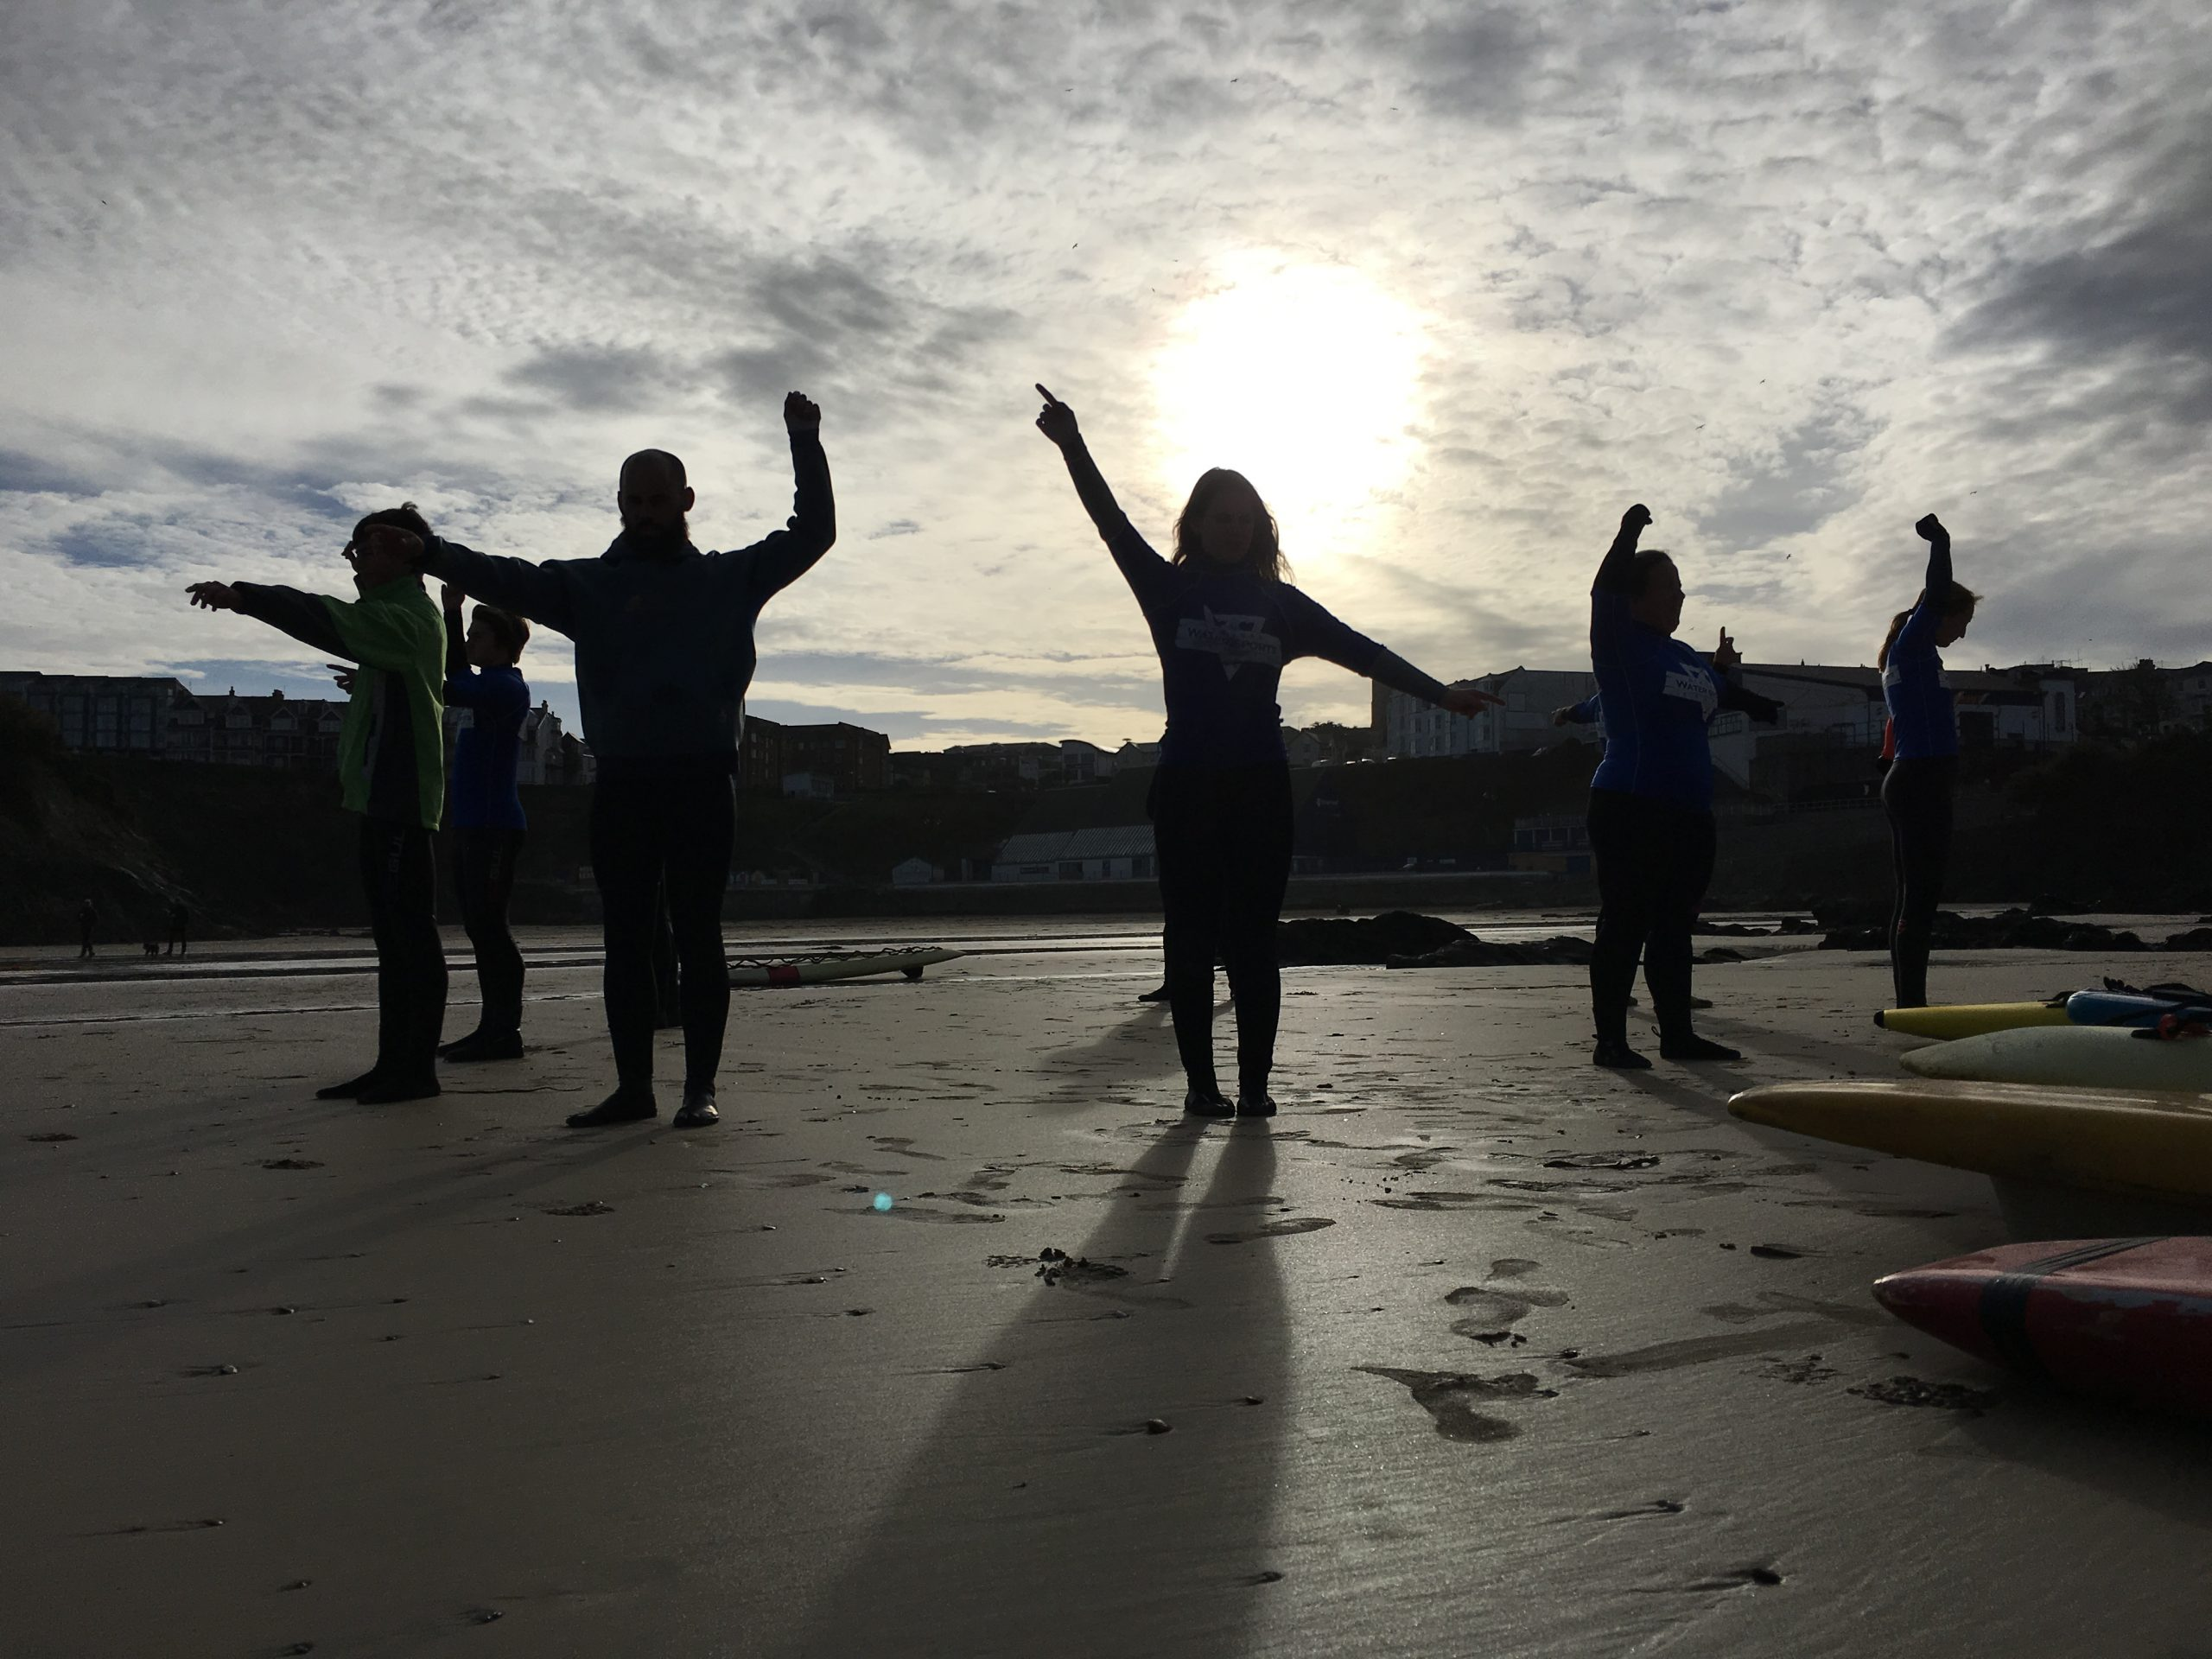 Lifeguard Course in full swing at Newquay Water Sports Centre in Newquay Harbour